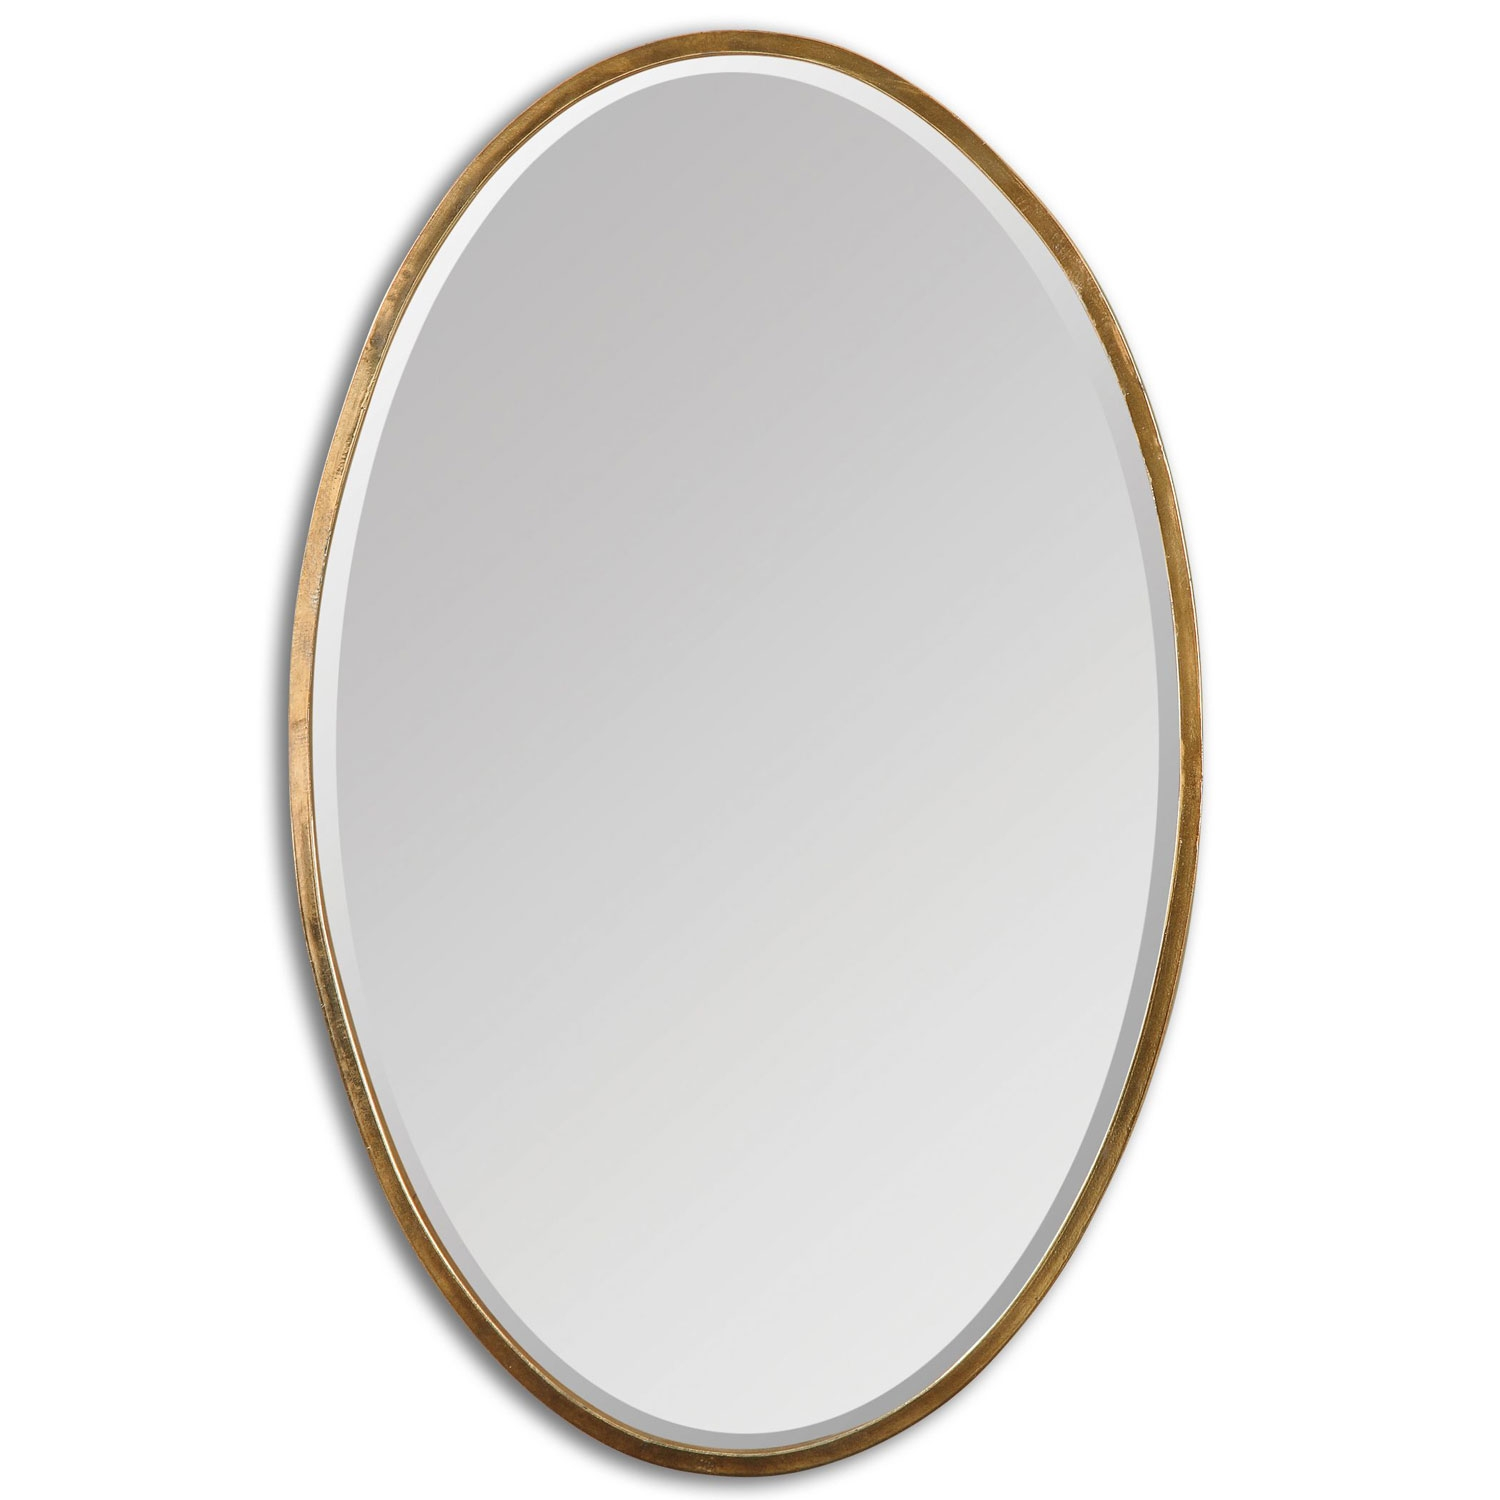 Permalink to Gold Oval Bathroom Mirror